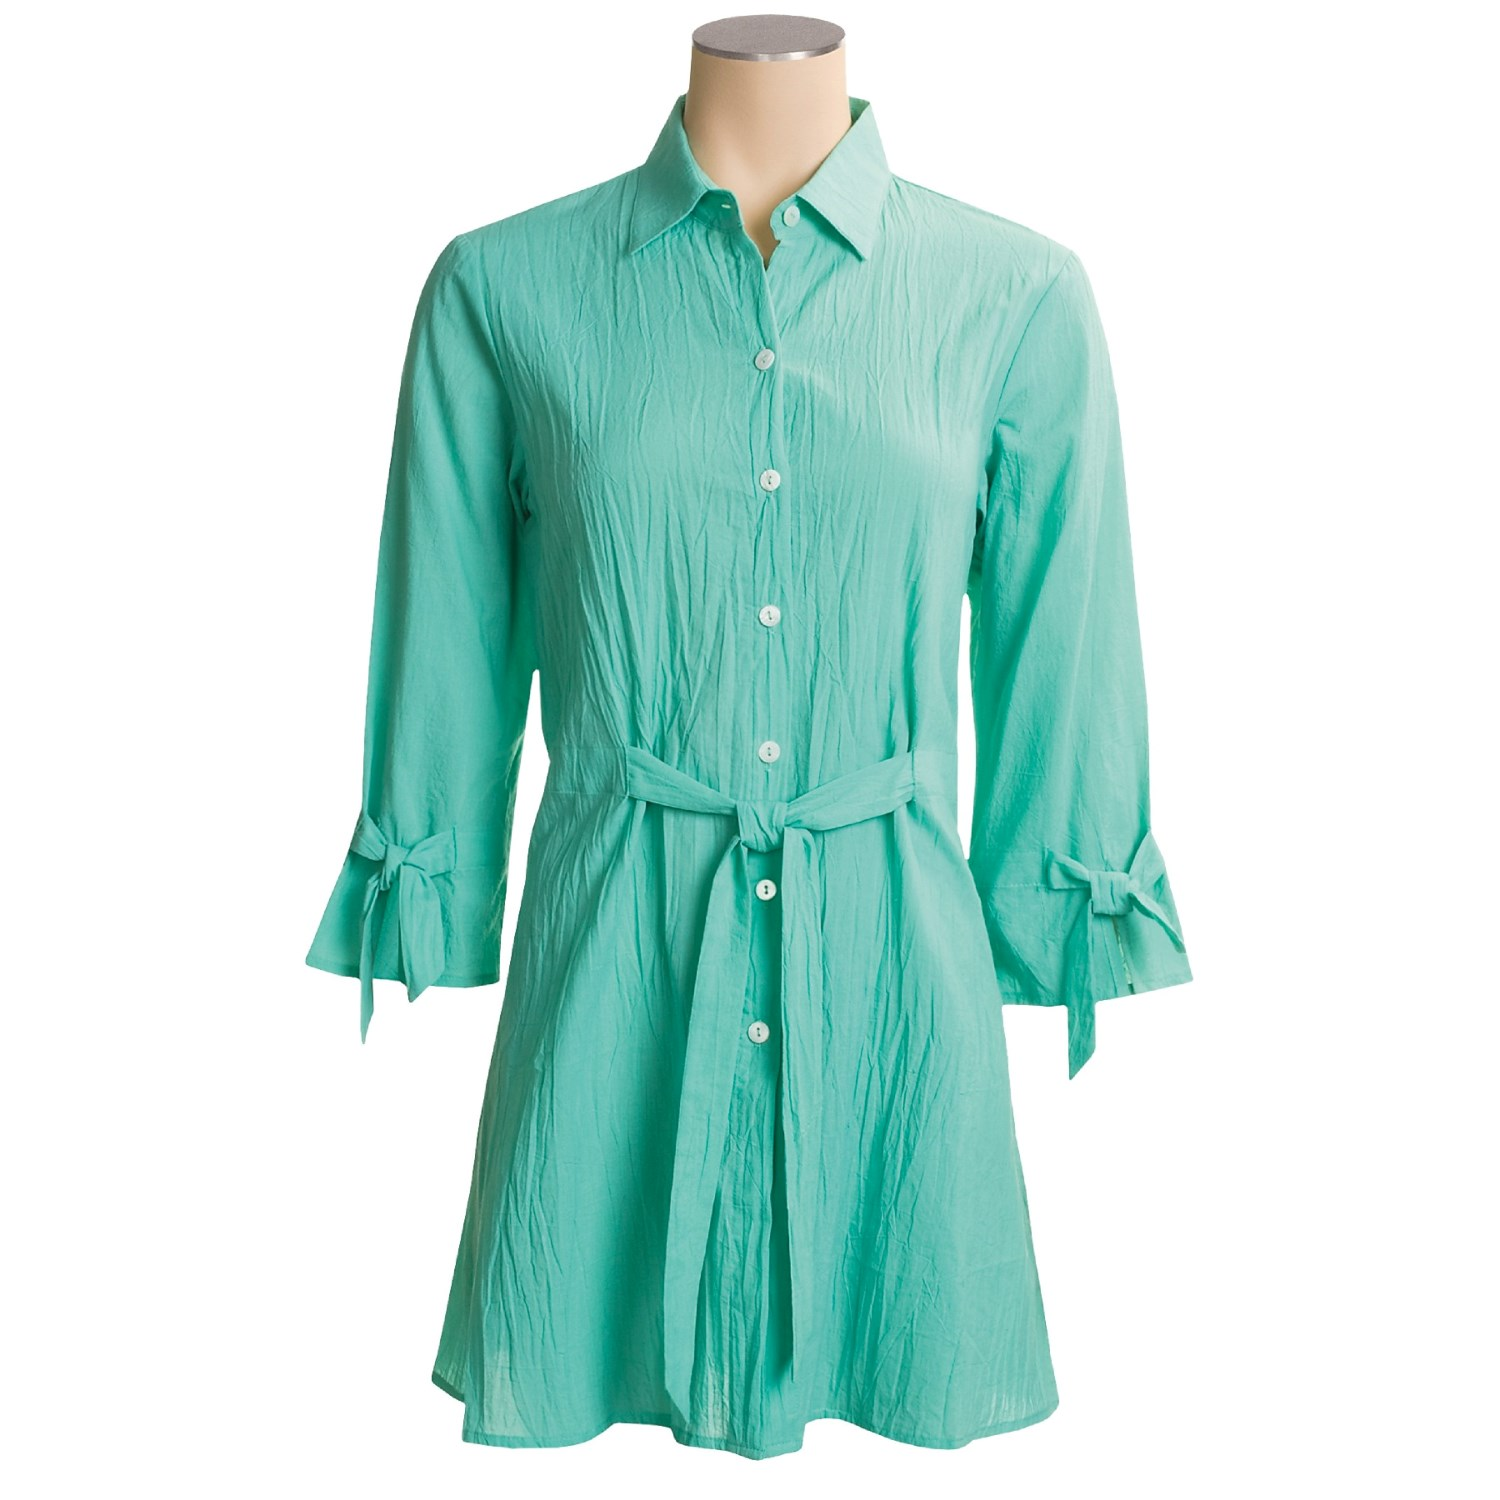 Tommy bahama crinkle lawn shirt dress for women 2528k for Tommy bahama long sleeve dress shirts